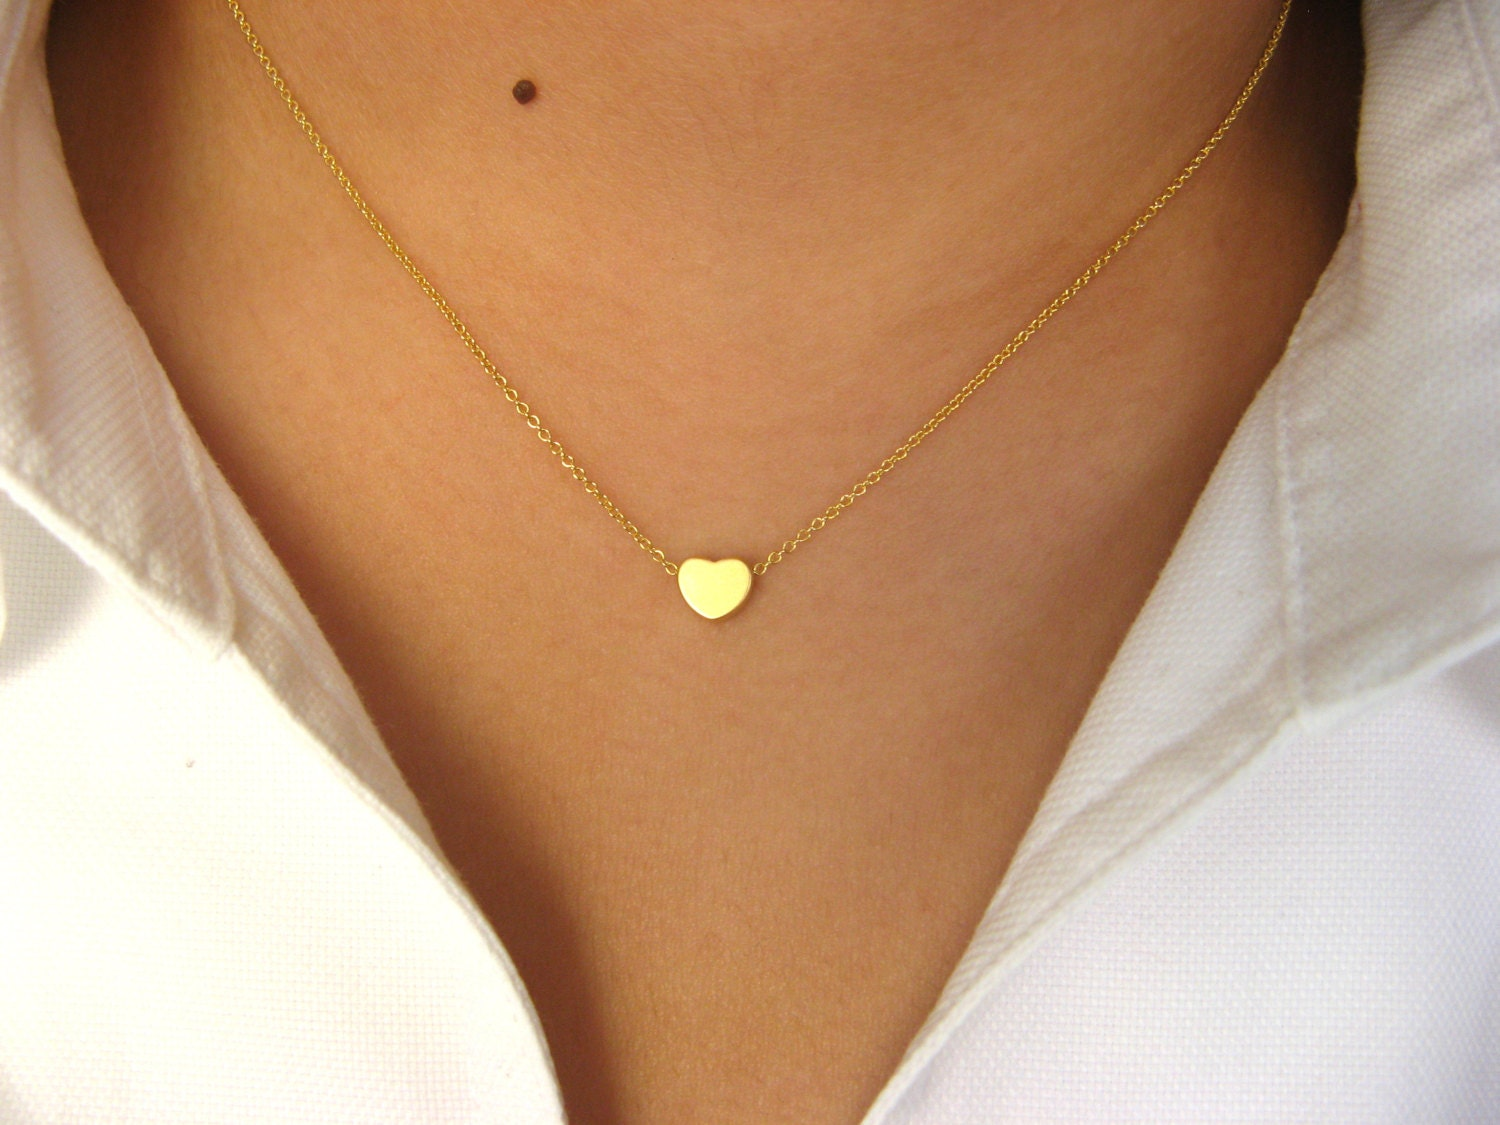 set pendant stone from gold necklaces jewellery image small lissoni nikki rose